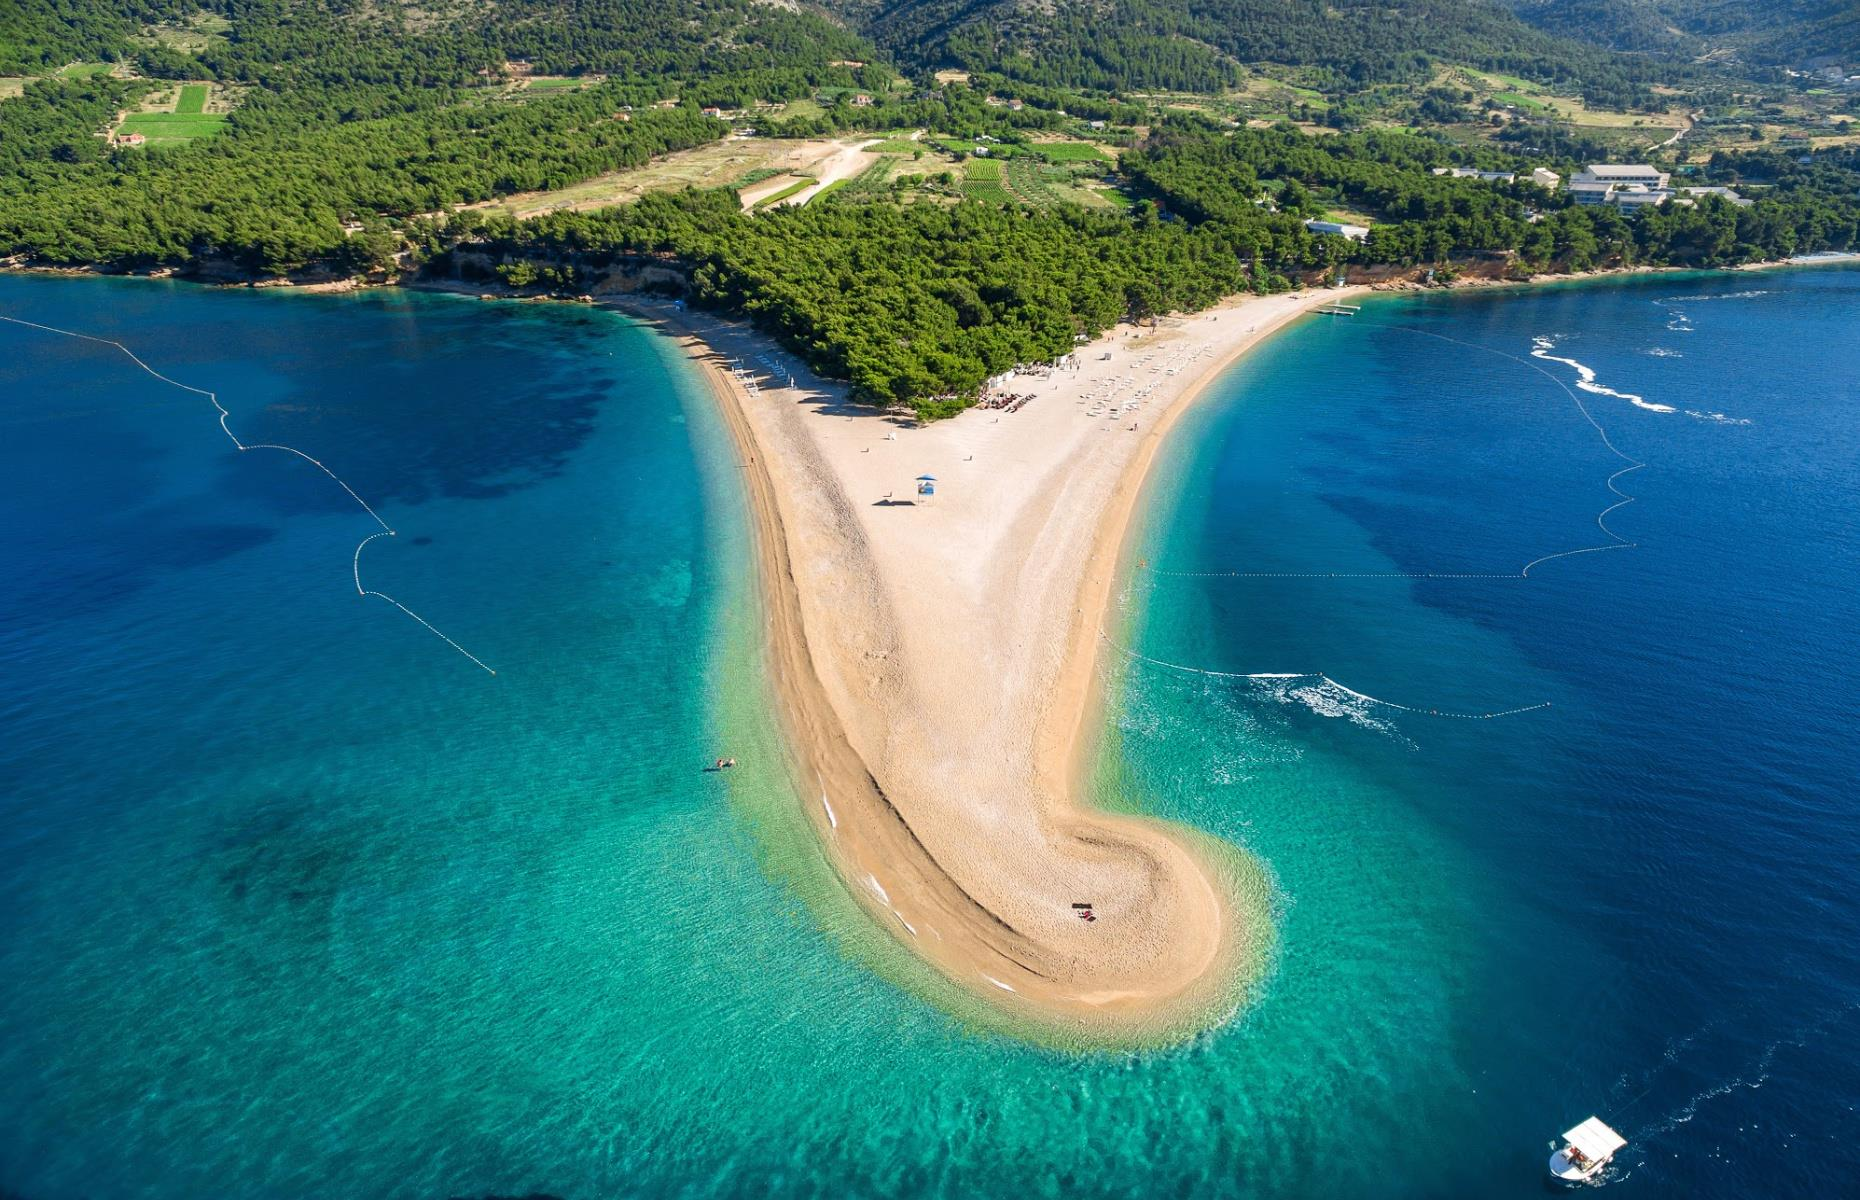 Slide 22 of 31: This arresting triangle-shaped beach is the pride of Brač, one of several Croatian islands in the Adriatic Sea. The beach gets its pointed tip from the accumulation of fine pebbles that have collected on a deep underwater reef. Its position in the sea also makes Zlatni Rat a popular destination for surfers and kite flyers.